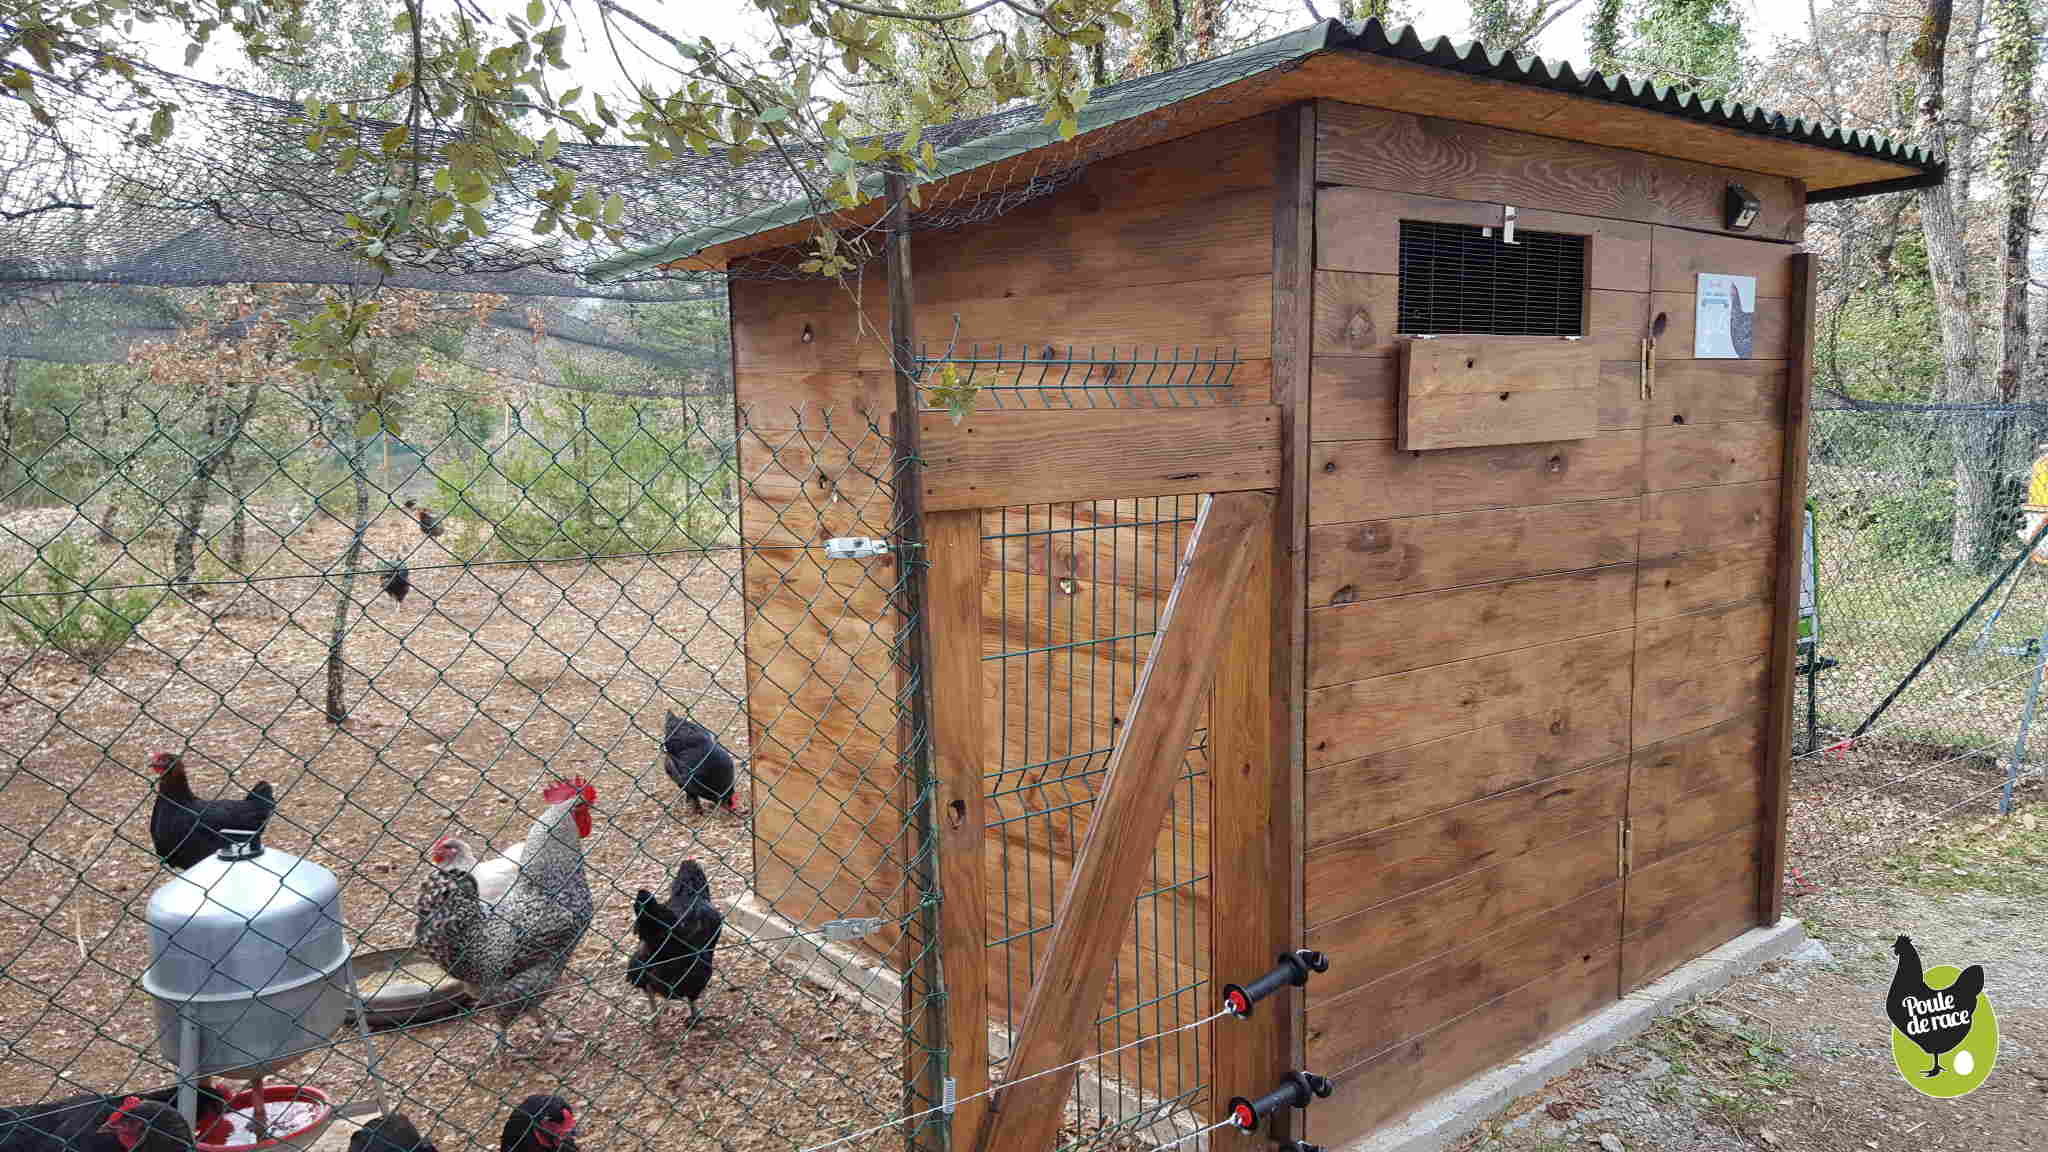 Adopter des poules